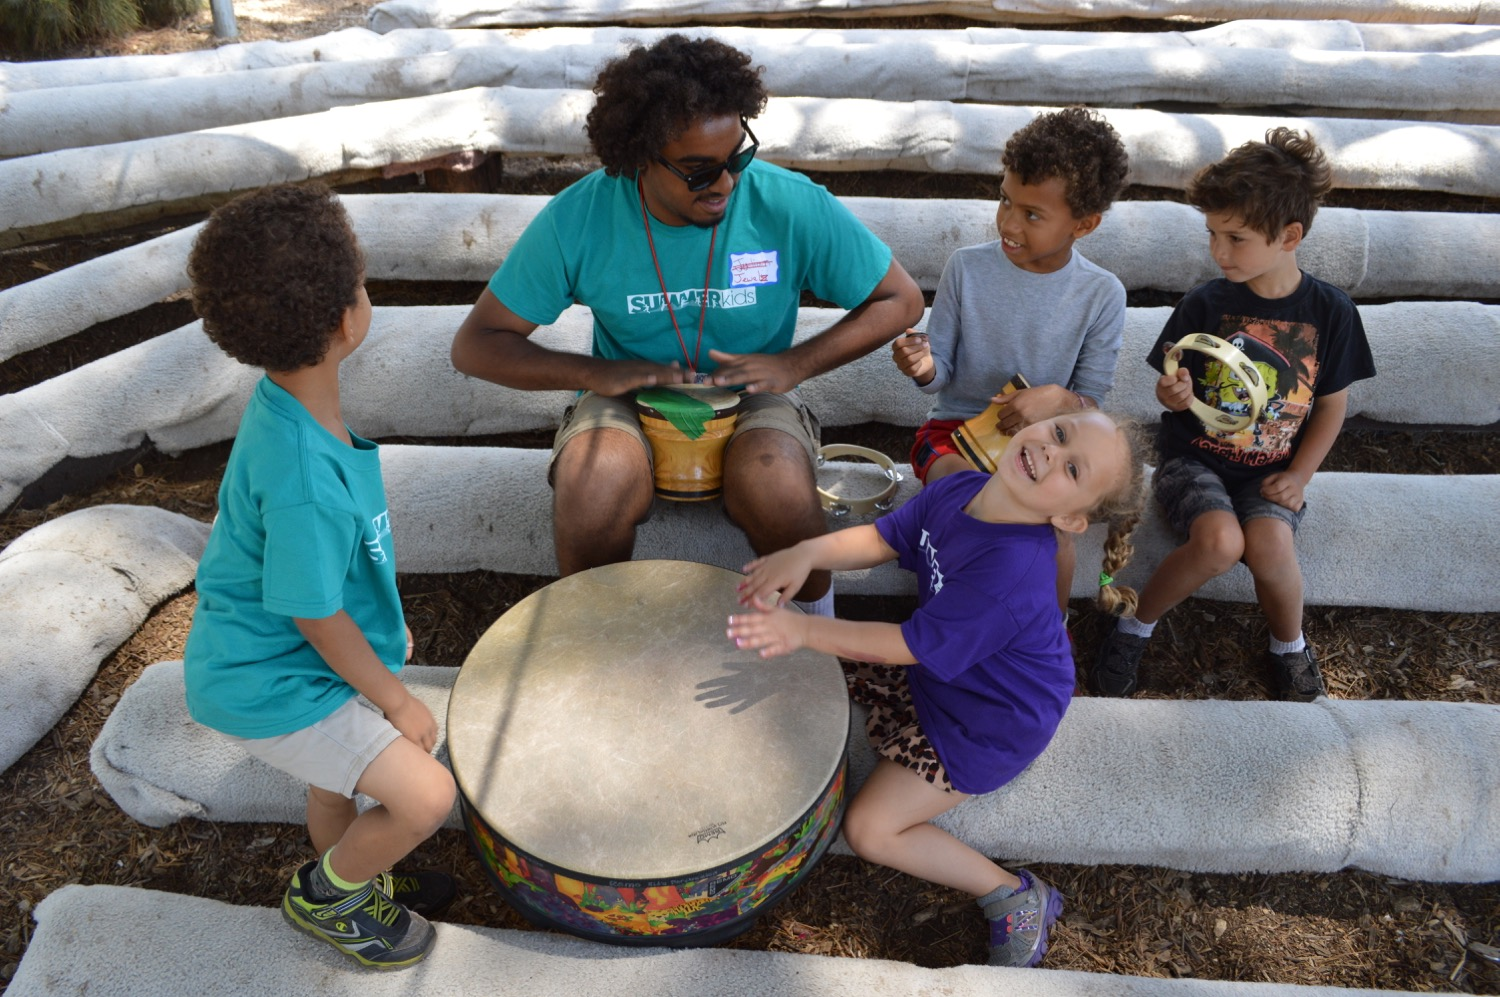 play in a camp drum circle,